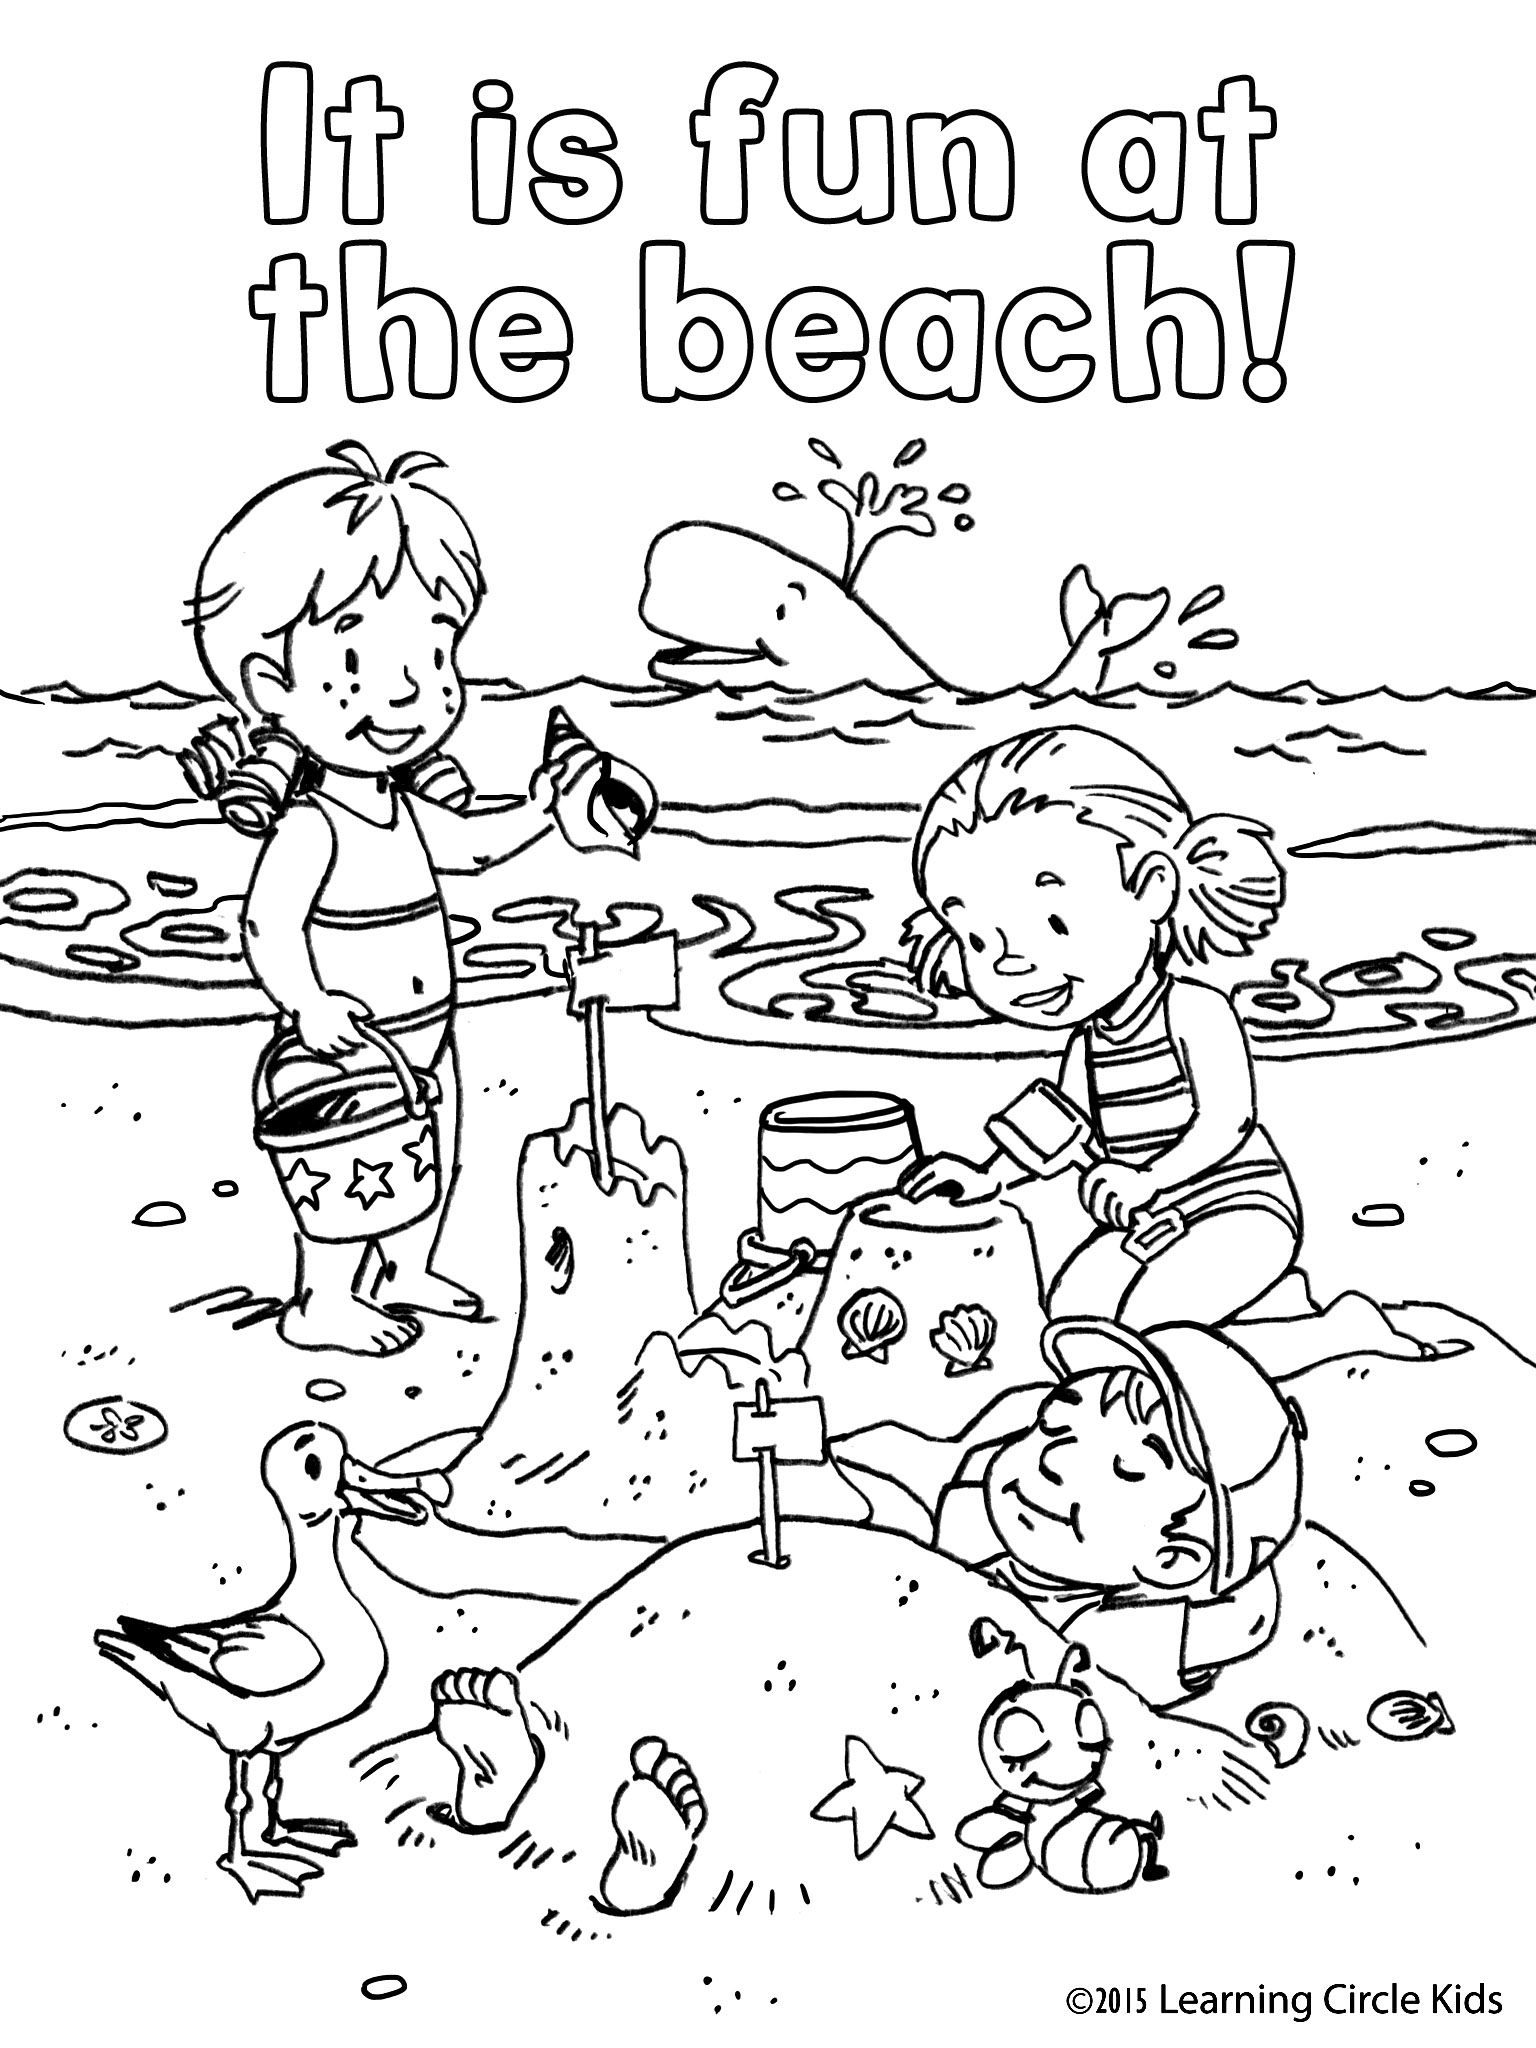 free coloring page children u0027s summer fun at the beach with reader